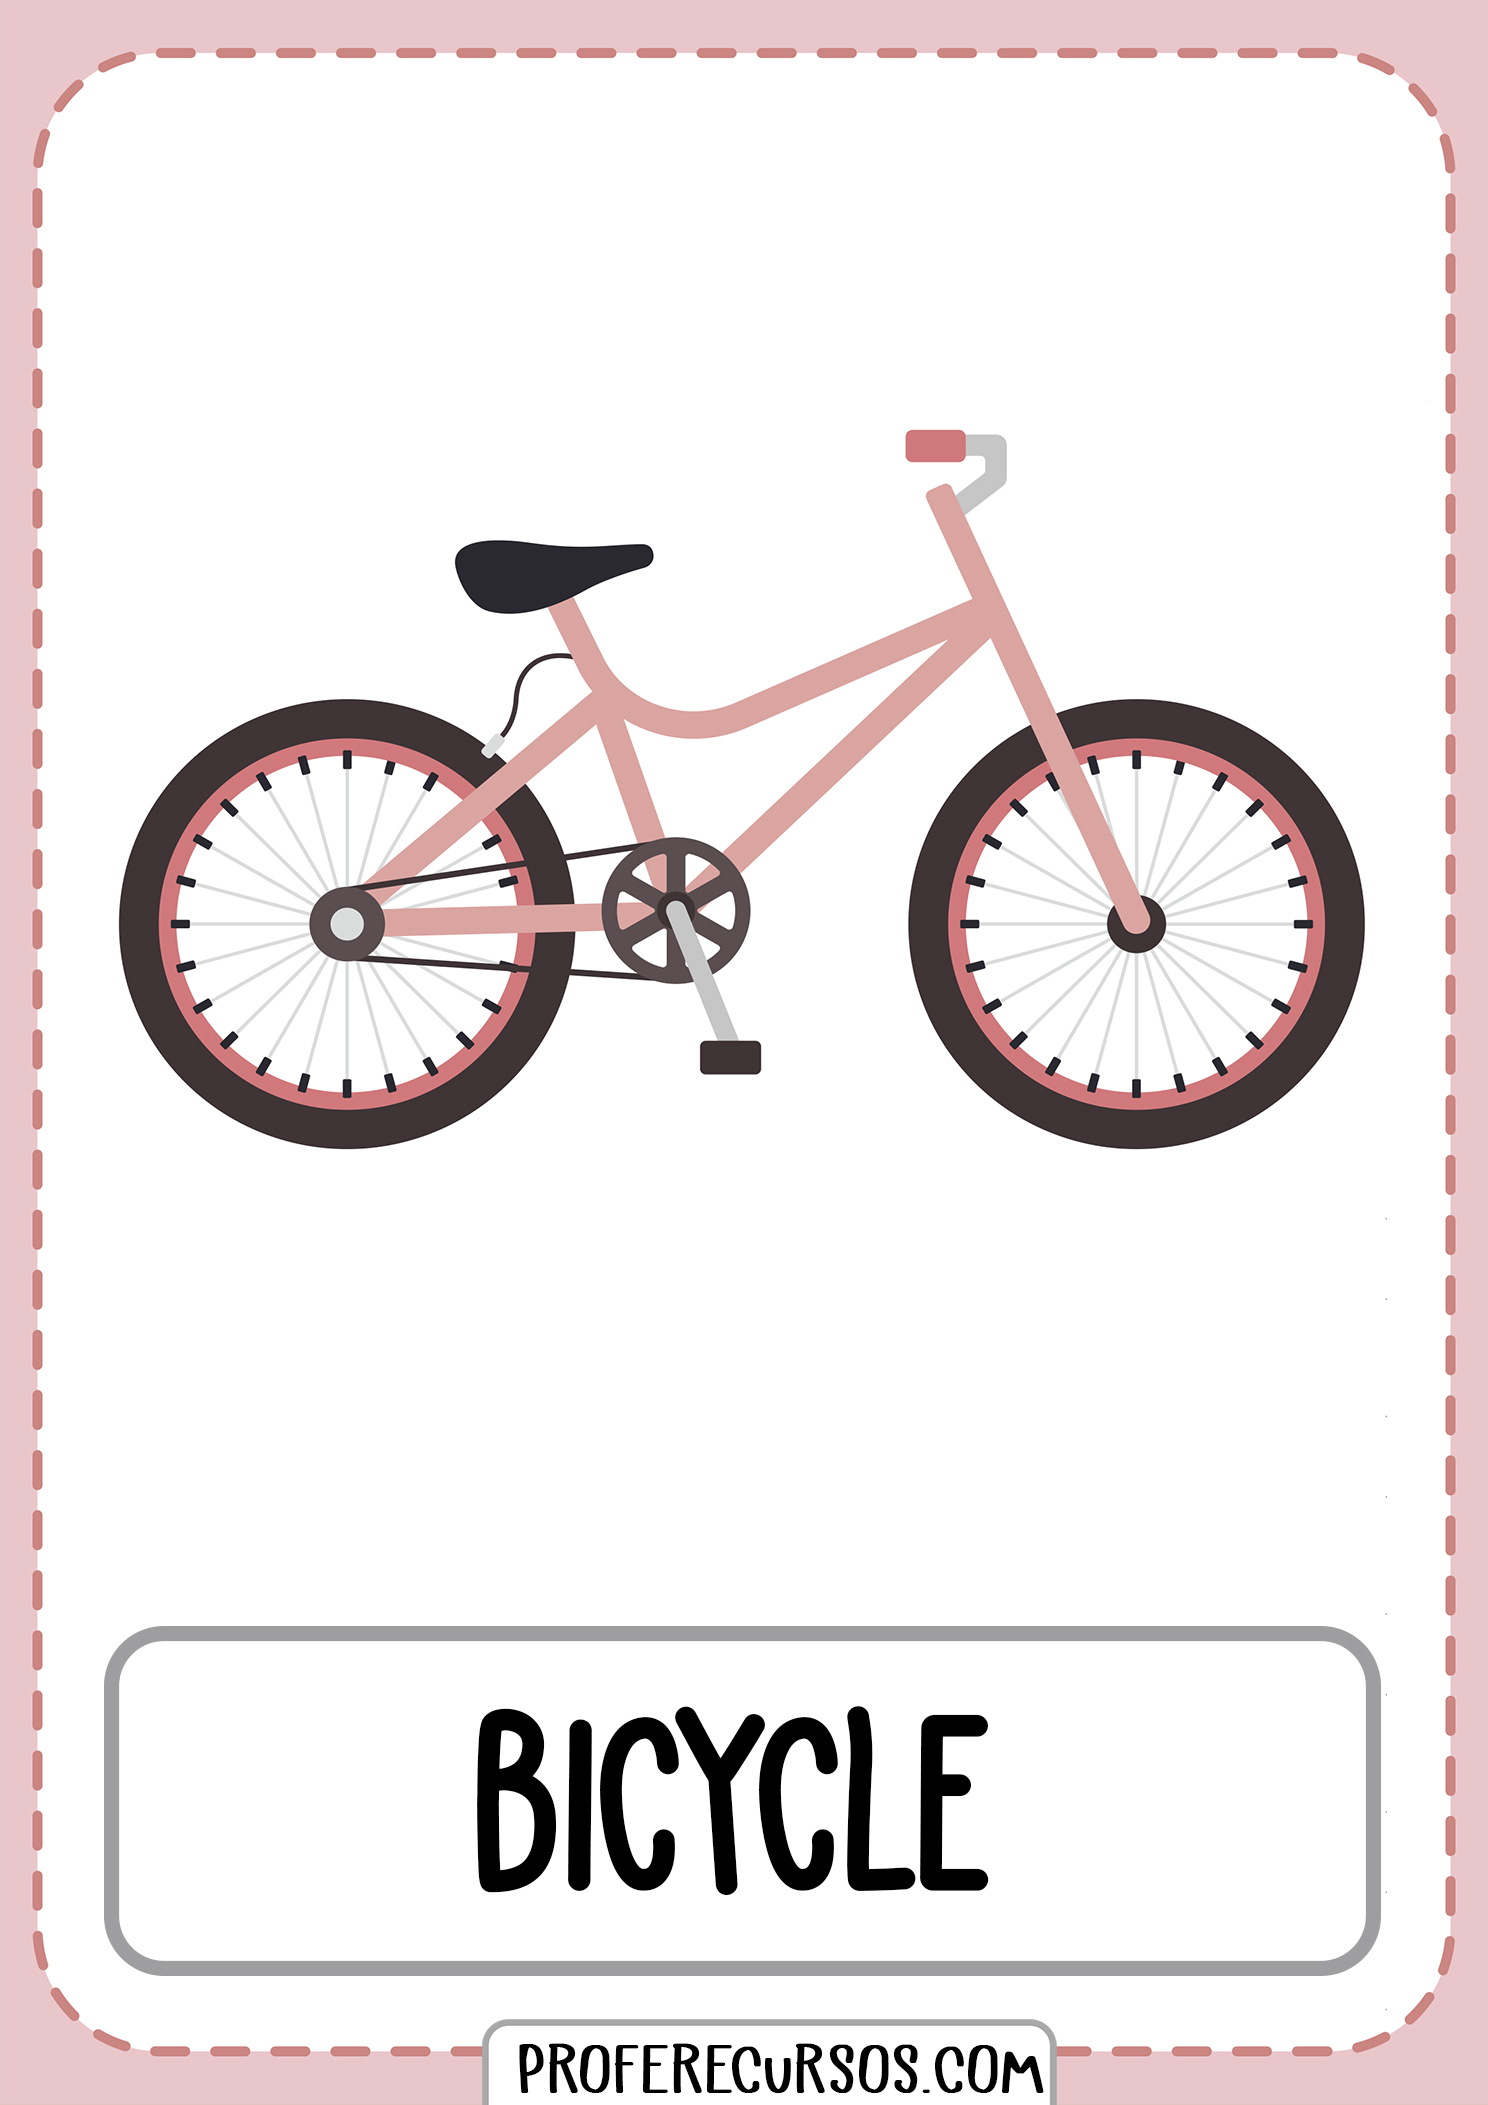 Means-of-transport-vocabulary-bicycle